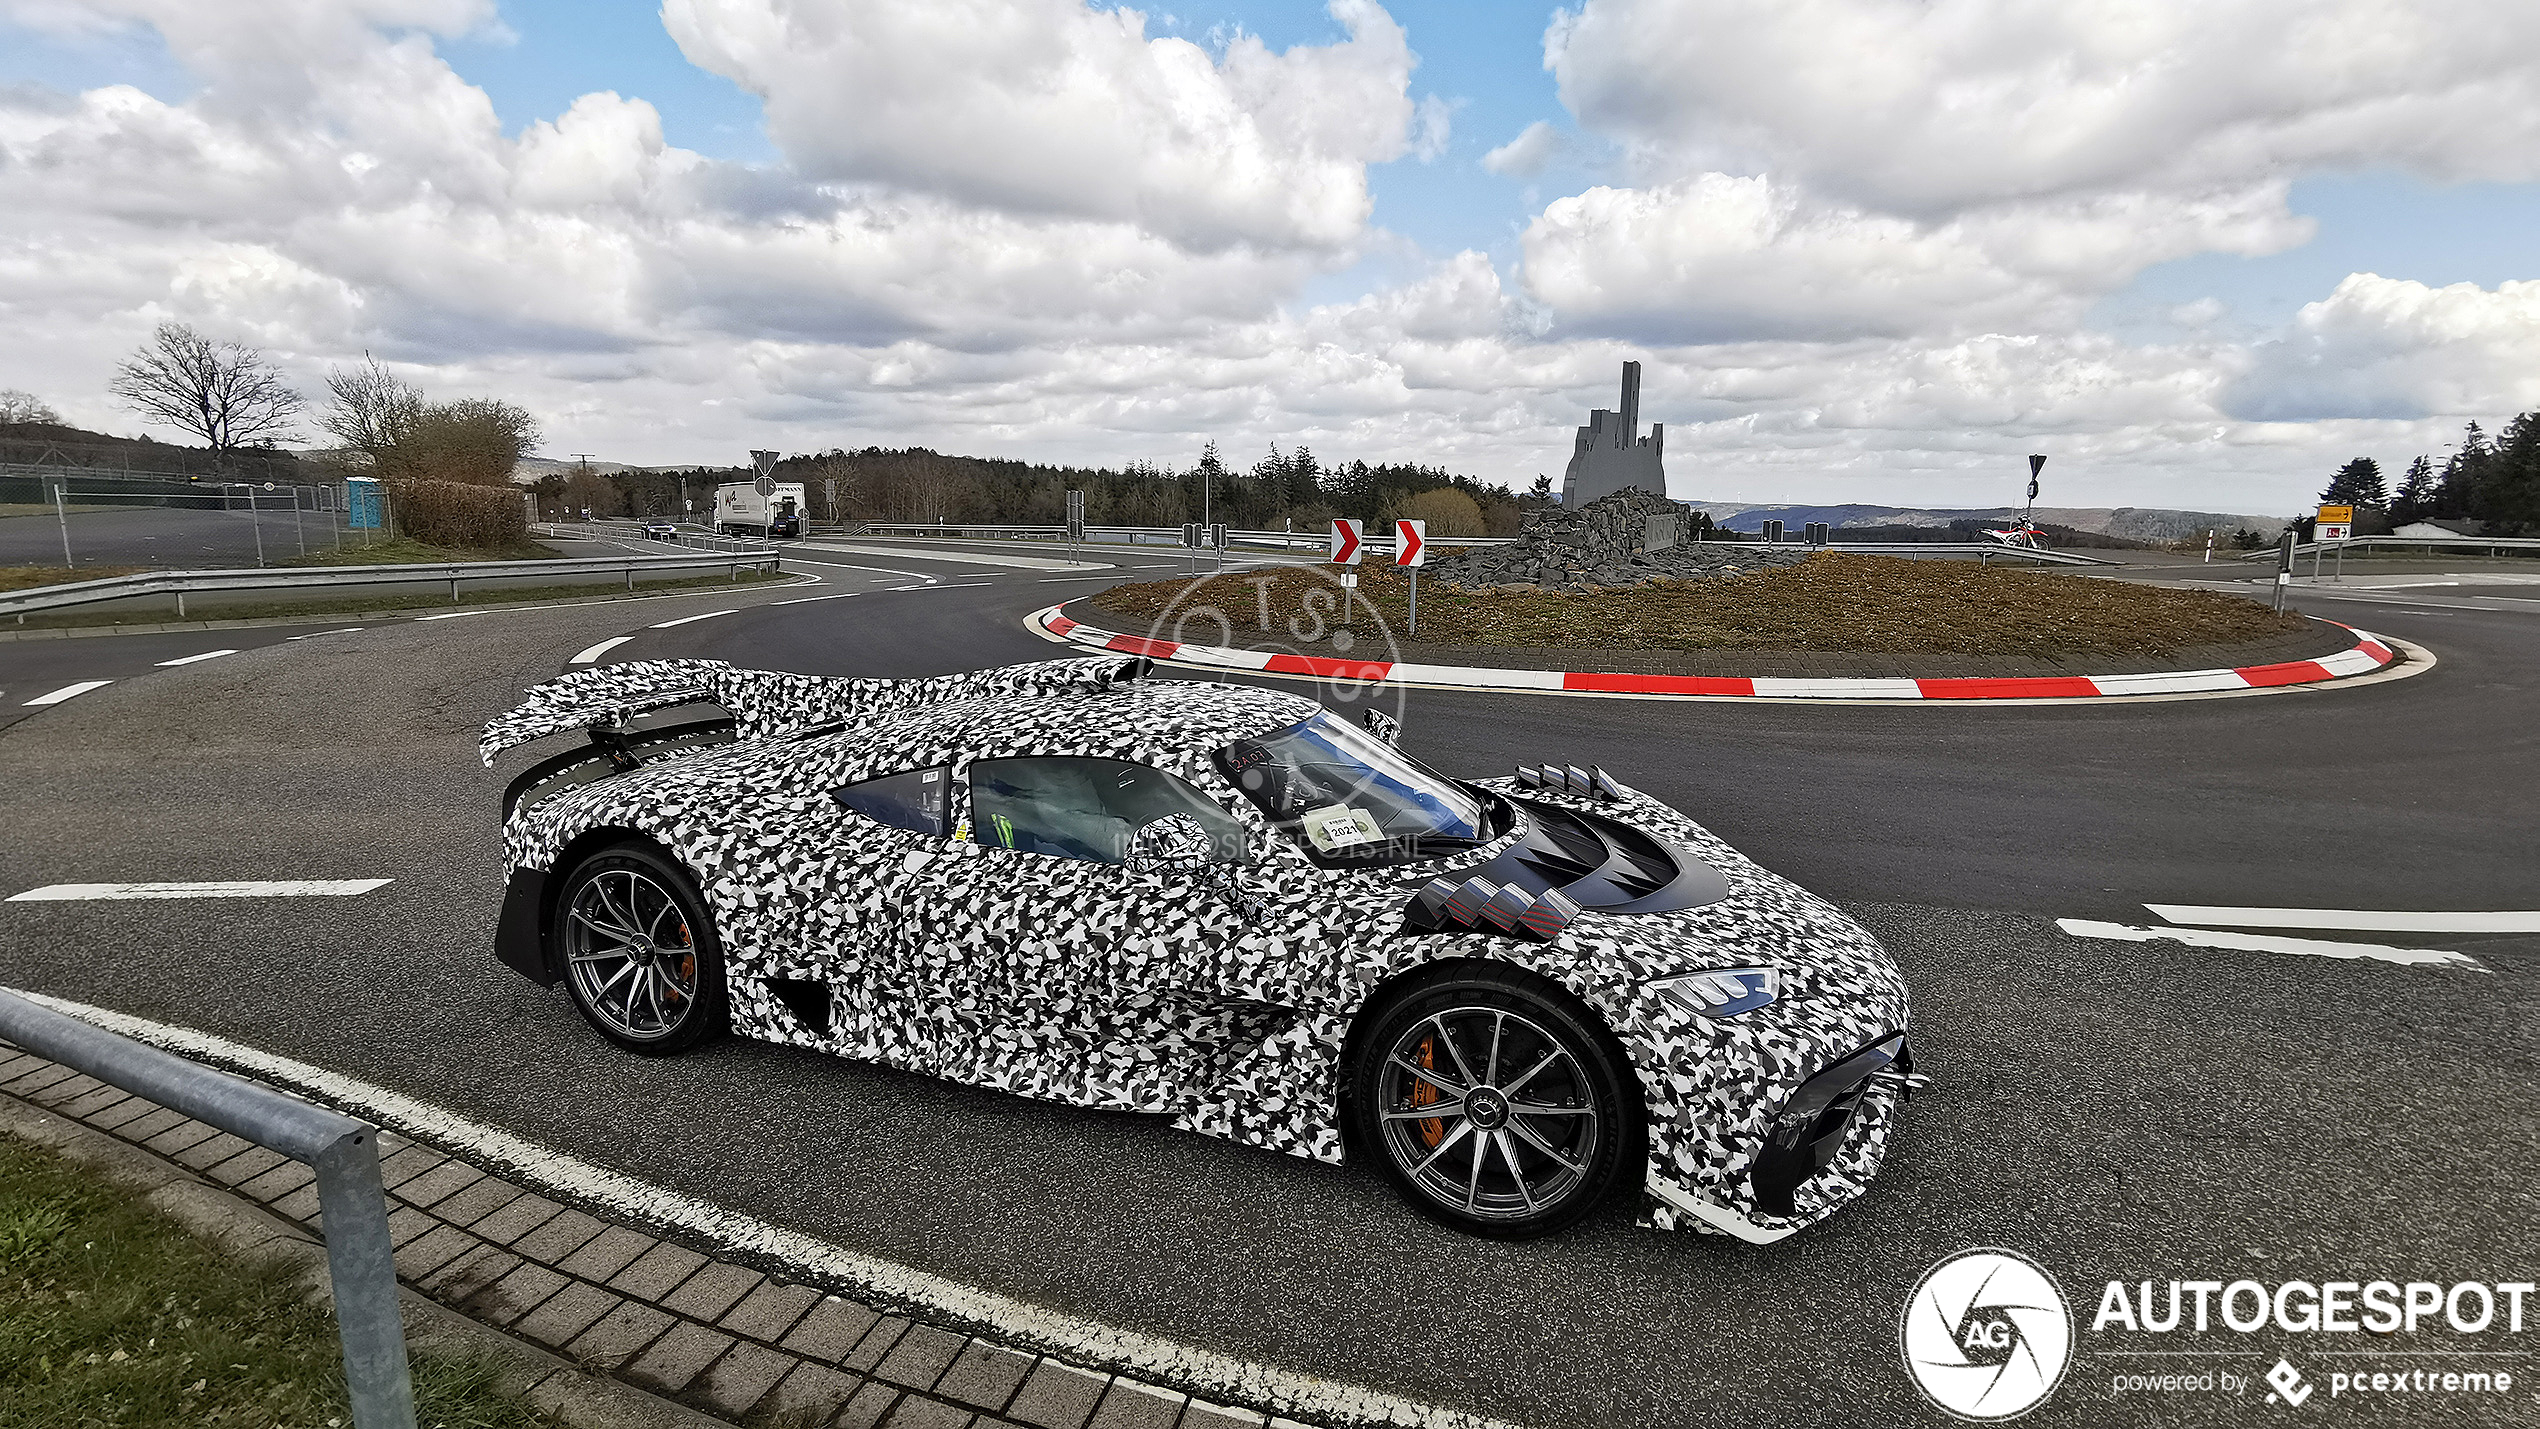 Mercedes-AMG Project One shows up at the Nürburgring